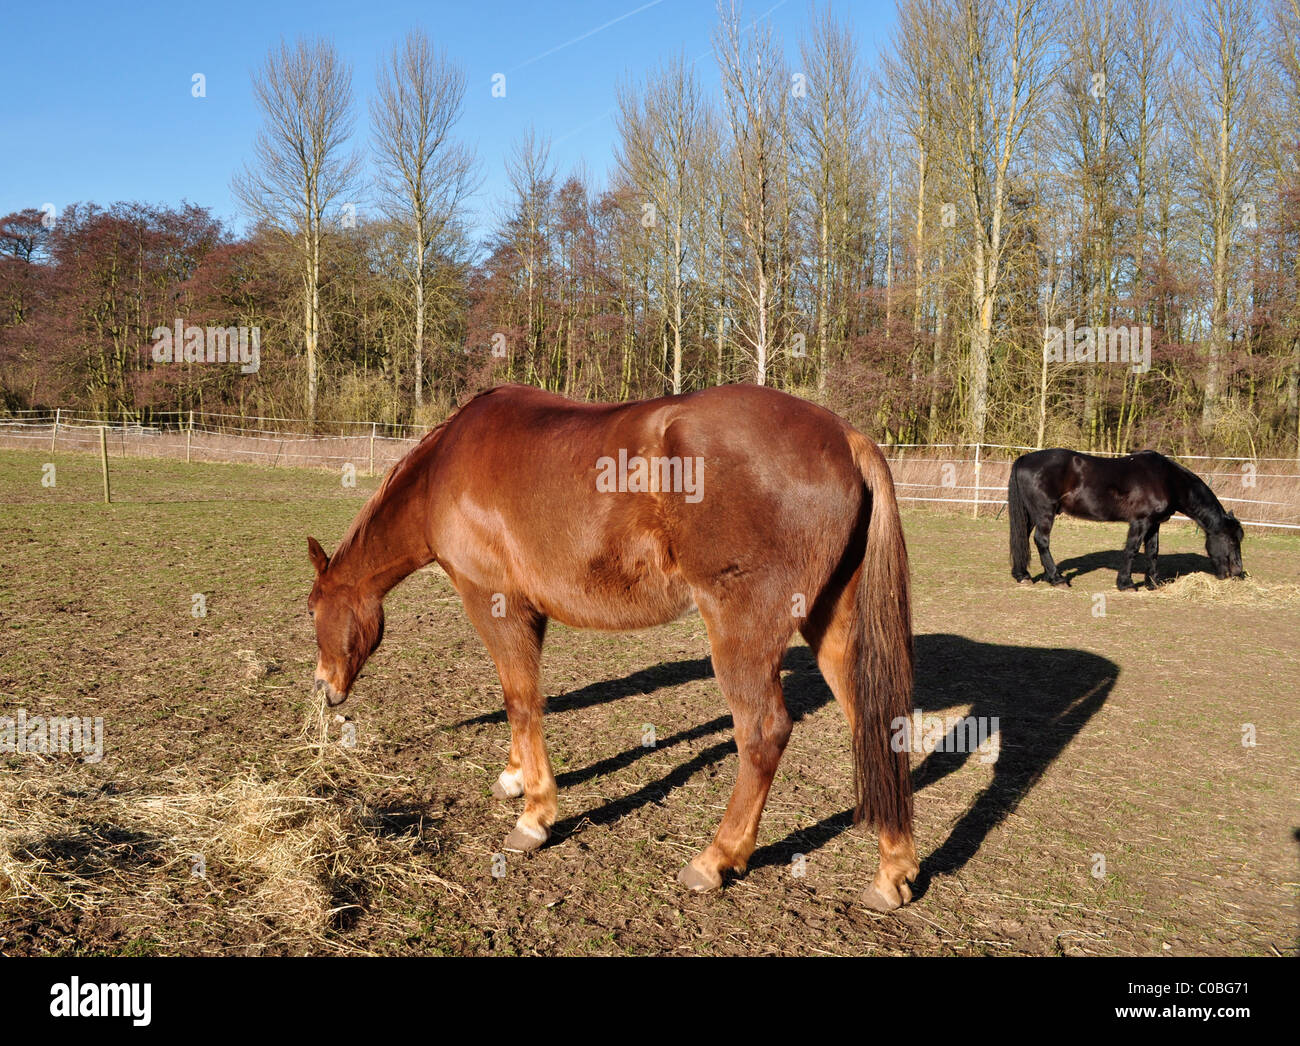 Show horses grazing at the end of winter, Norfolk, England - Stock Image